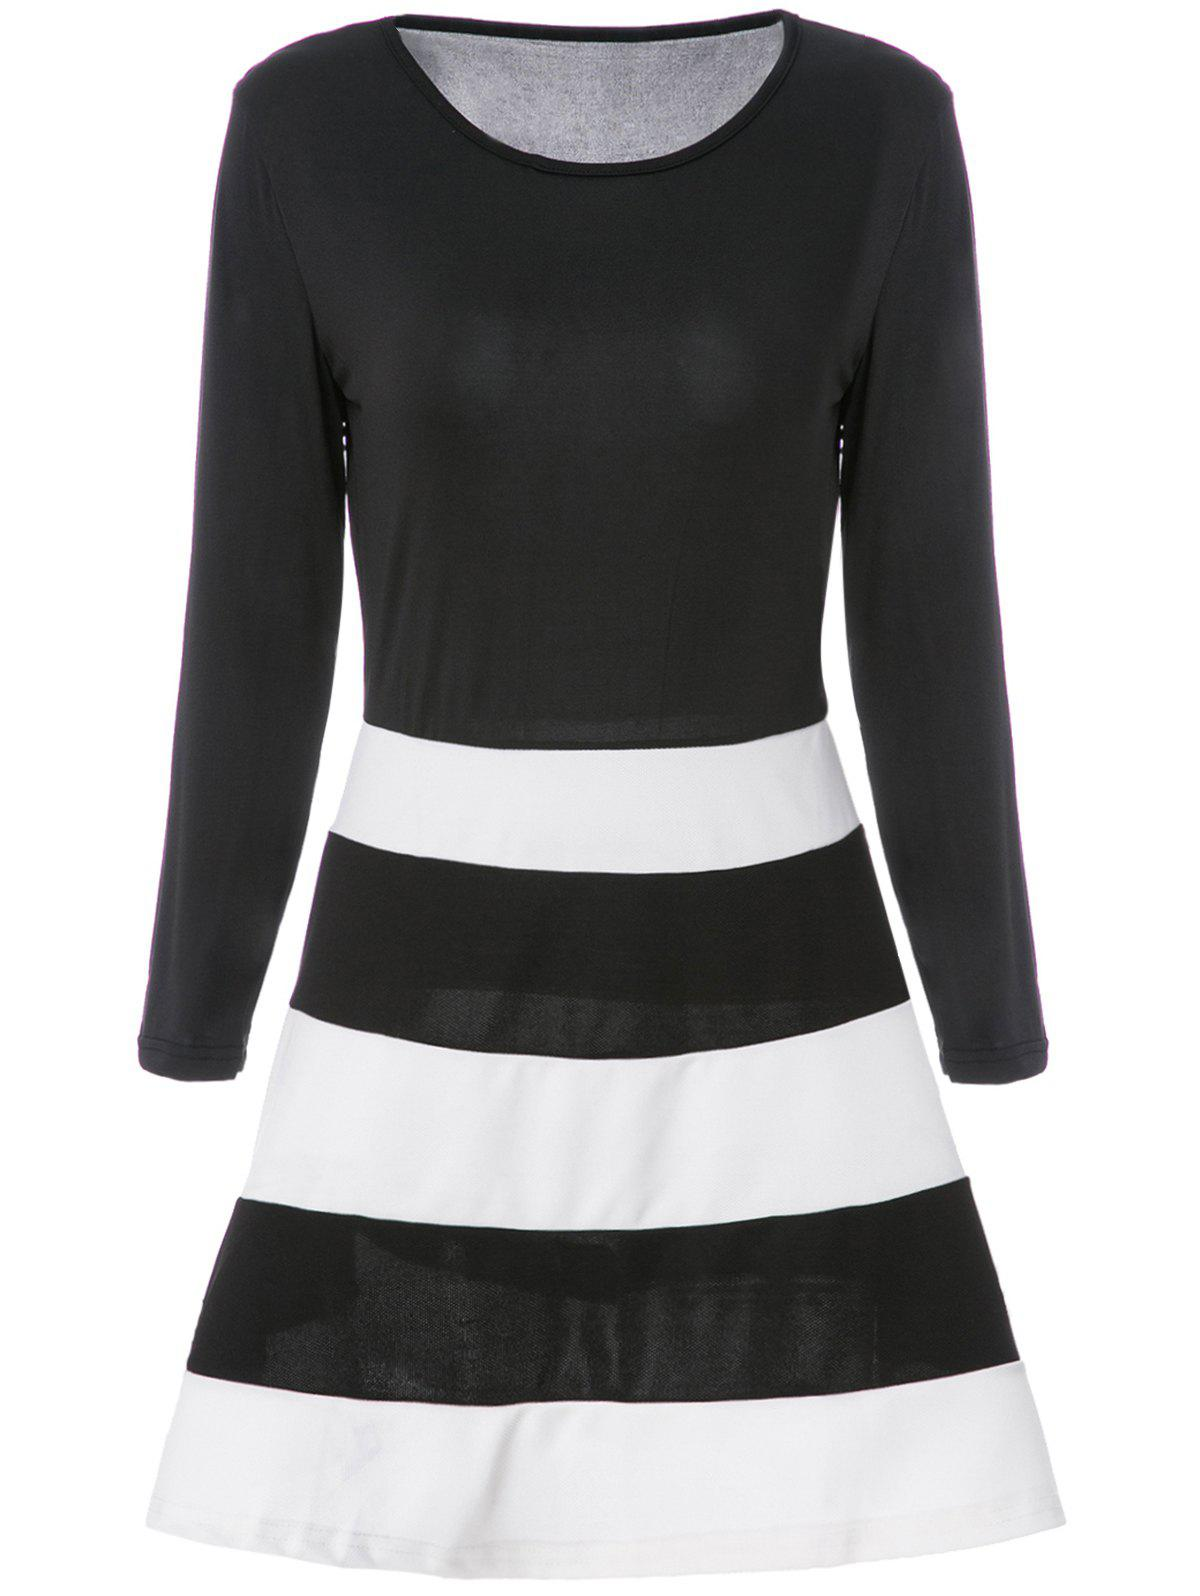 Simple Scoop Neck Long Sleeve Striped Color Block Women's Dress - WHITE/BLACK M